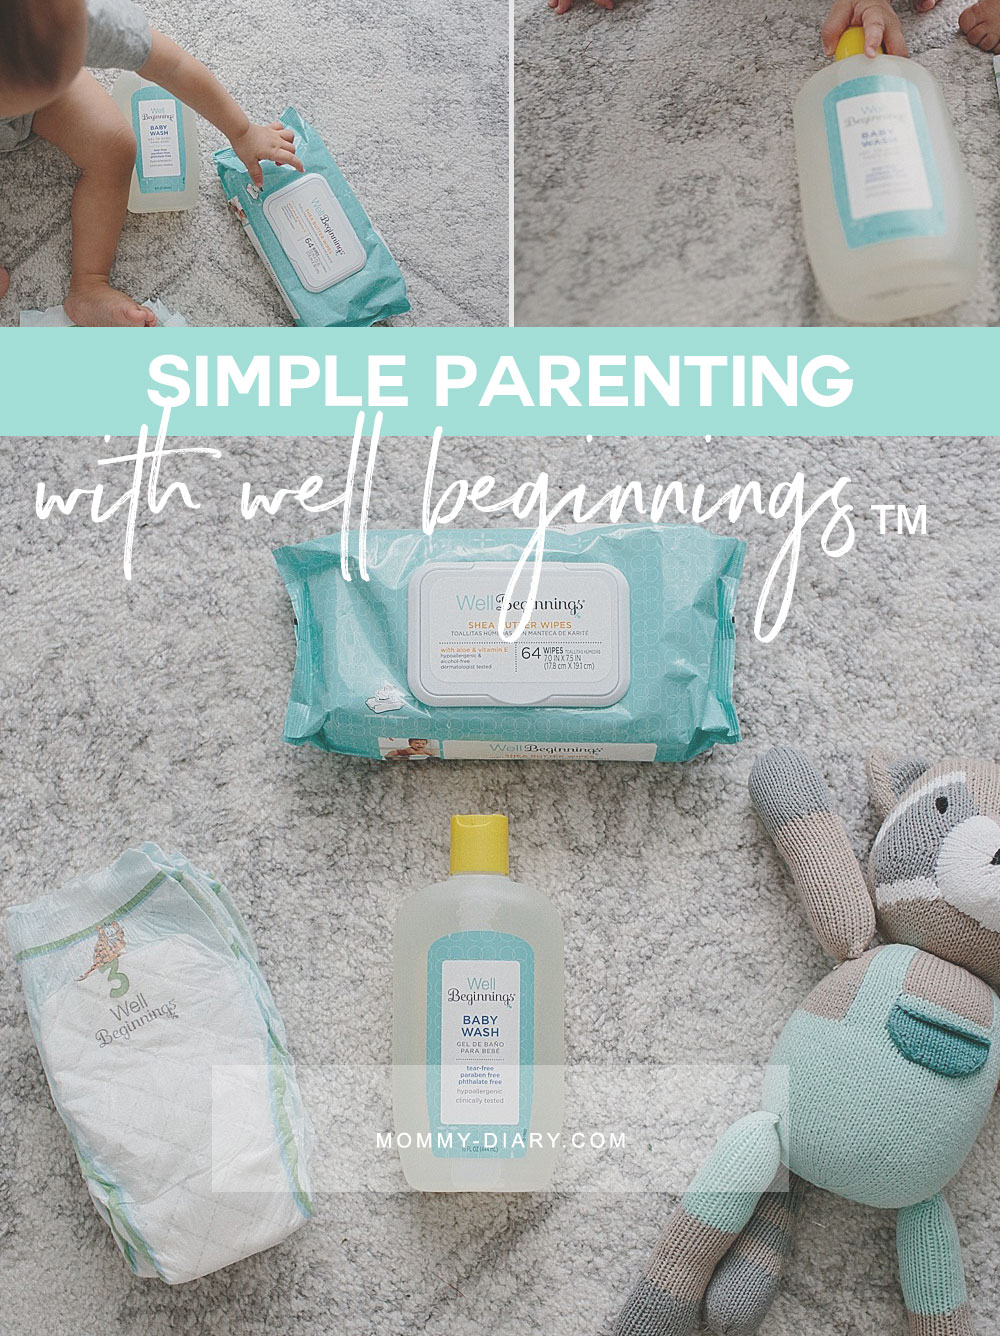 simple-parenting-well-beginnings-walgreens